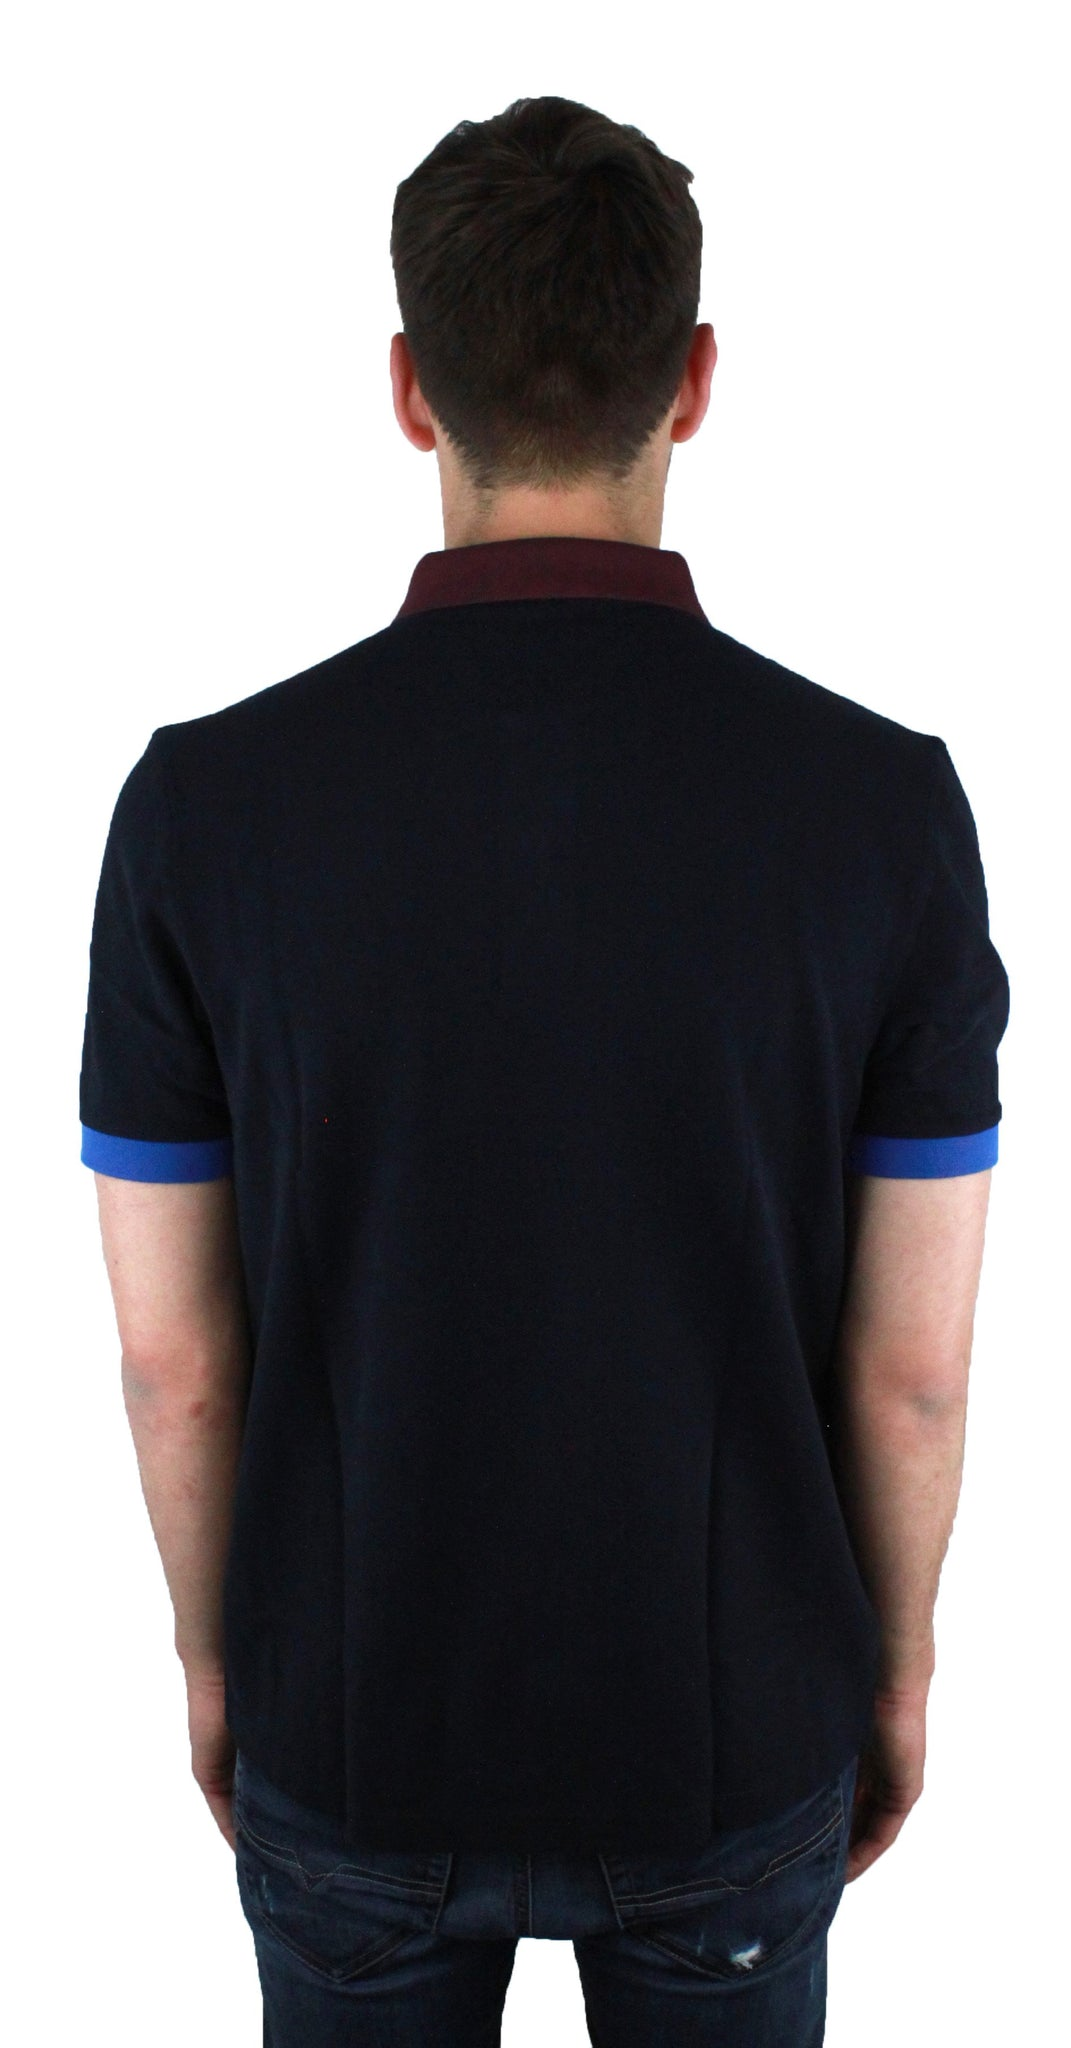 Fred perry M9552 608 Colour Block Pique Navy Polo Shirt - Wholesale Designer Clothing